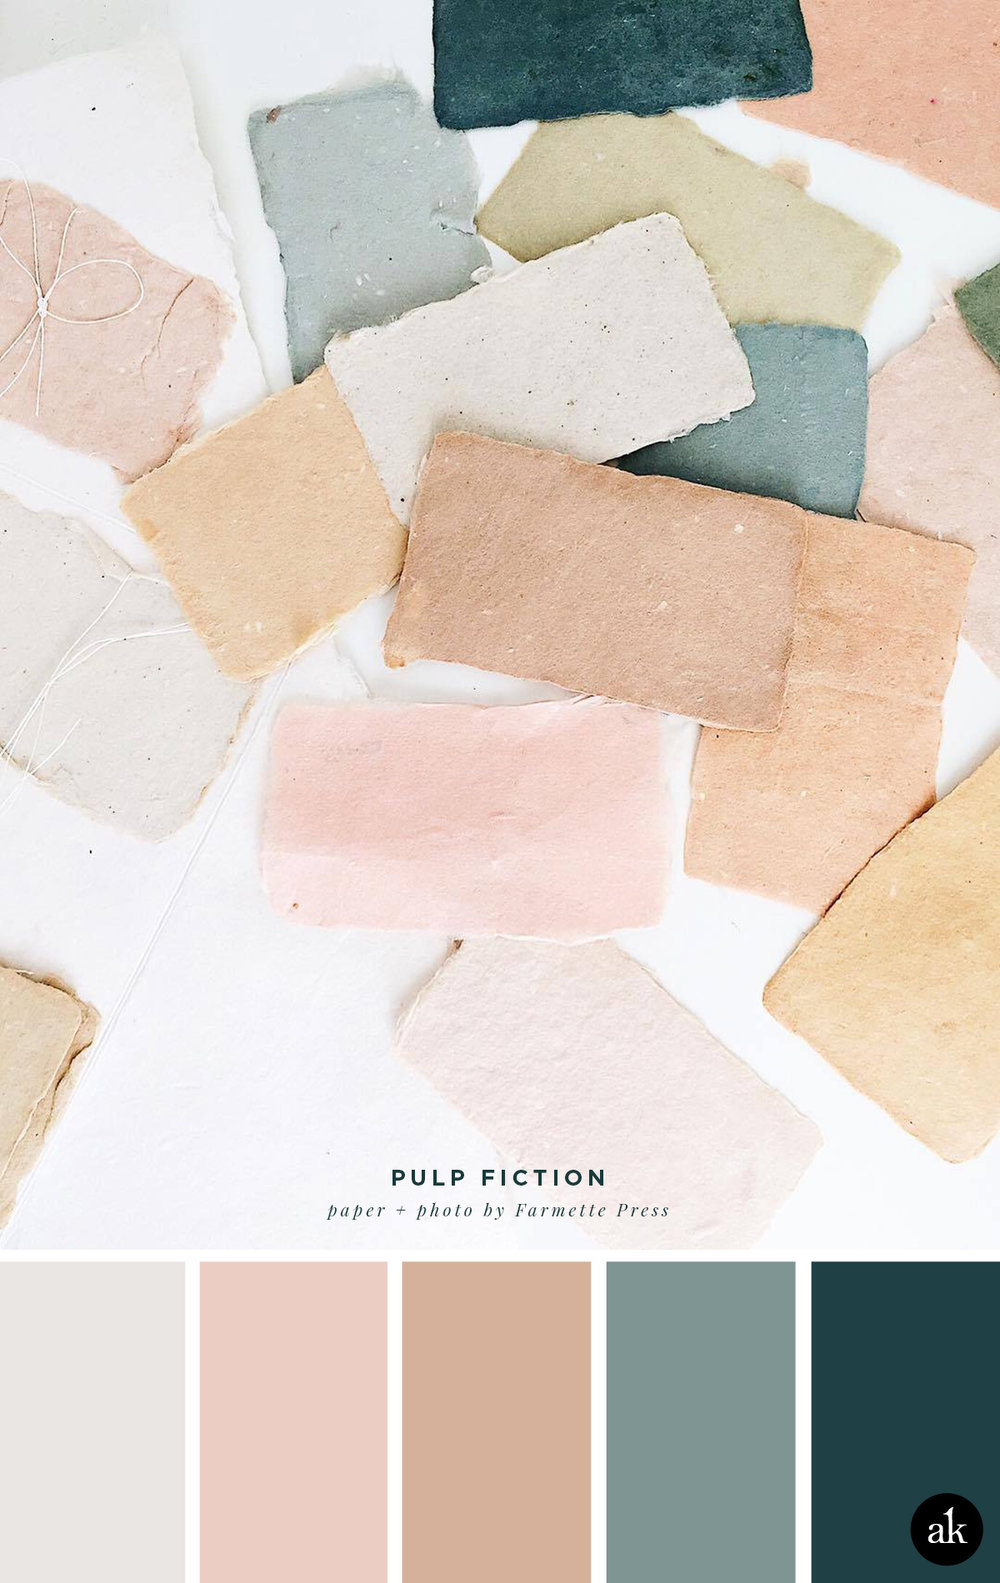 a handmade-pastel-paper-inspired color palette | soft gray, blush pink, tan pink, gray-blue | paper and photo by Farmette Press